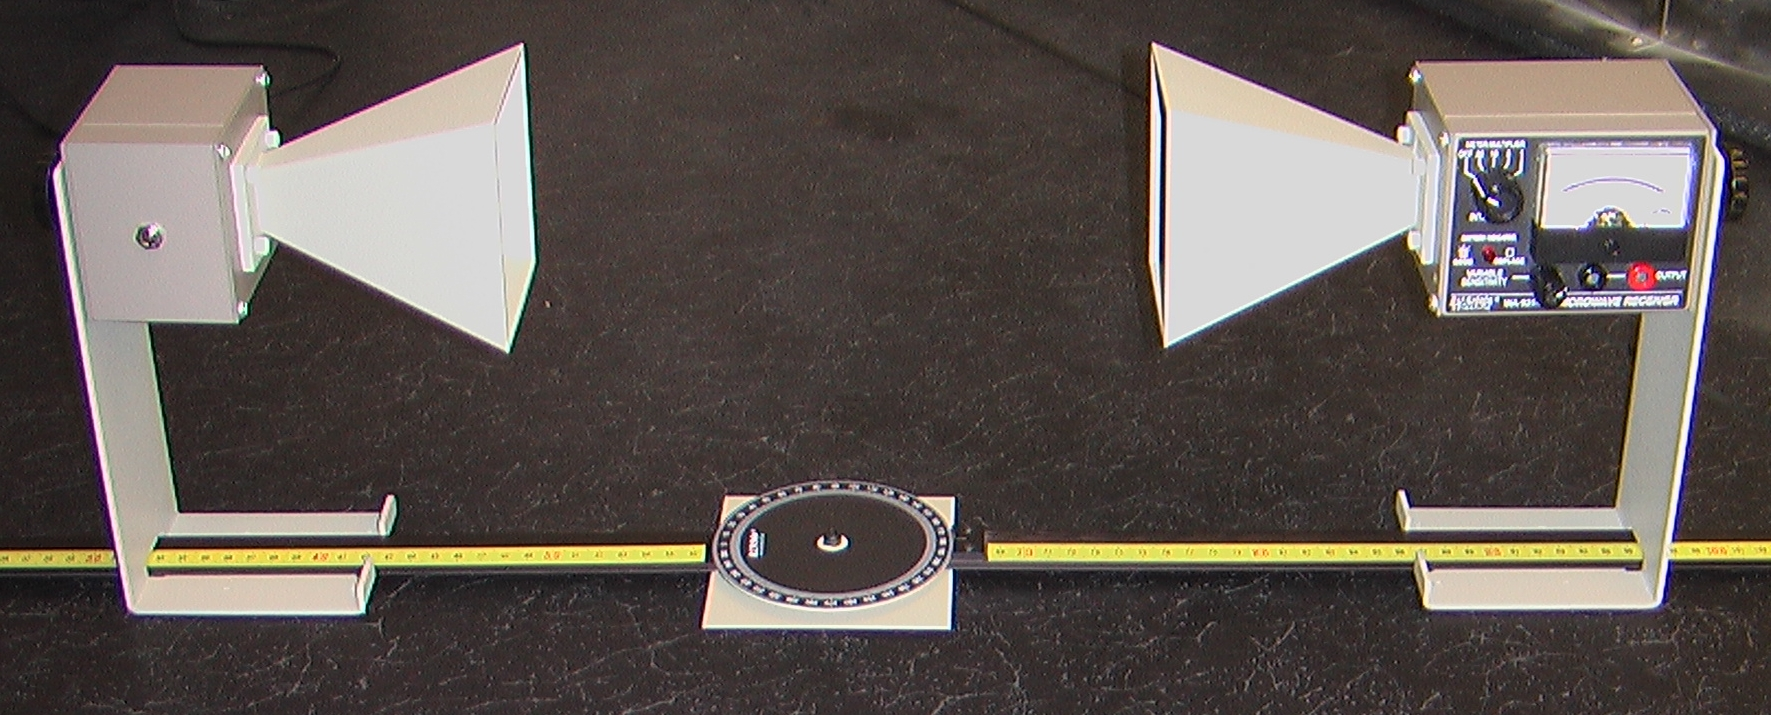 microwave optics Provide an introduction and conclusion about fabry-perot interferometer,and michelson interferometer, and fiber optics, and brewster's angle, and bragg diffraction.